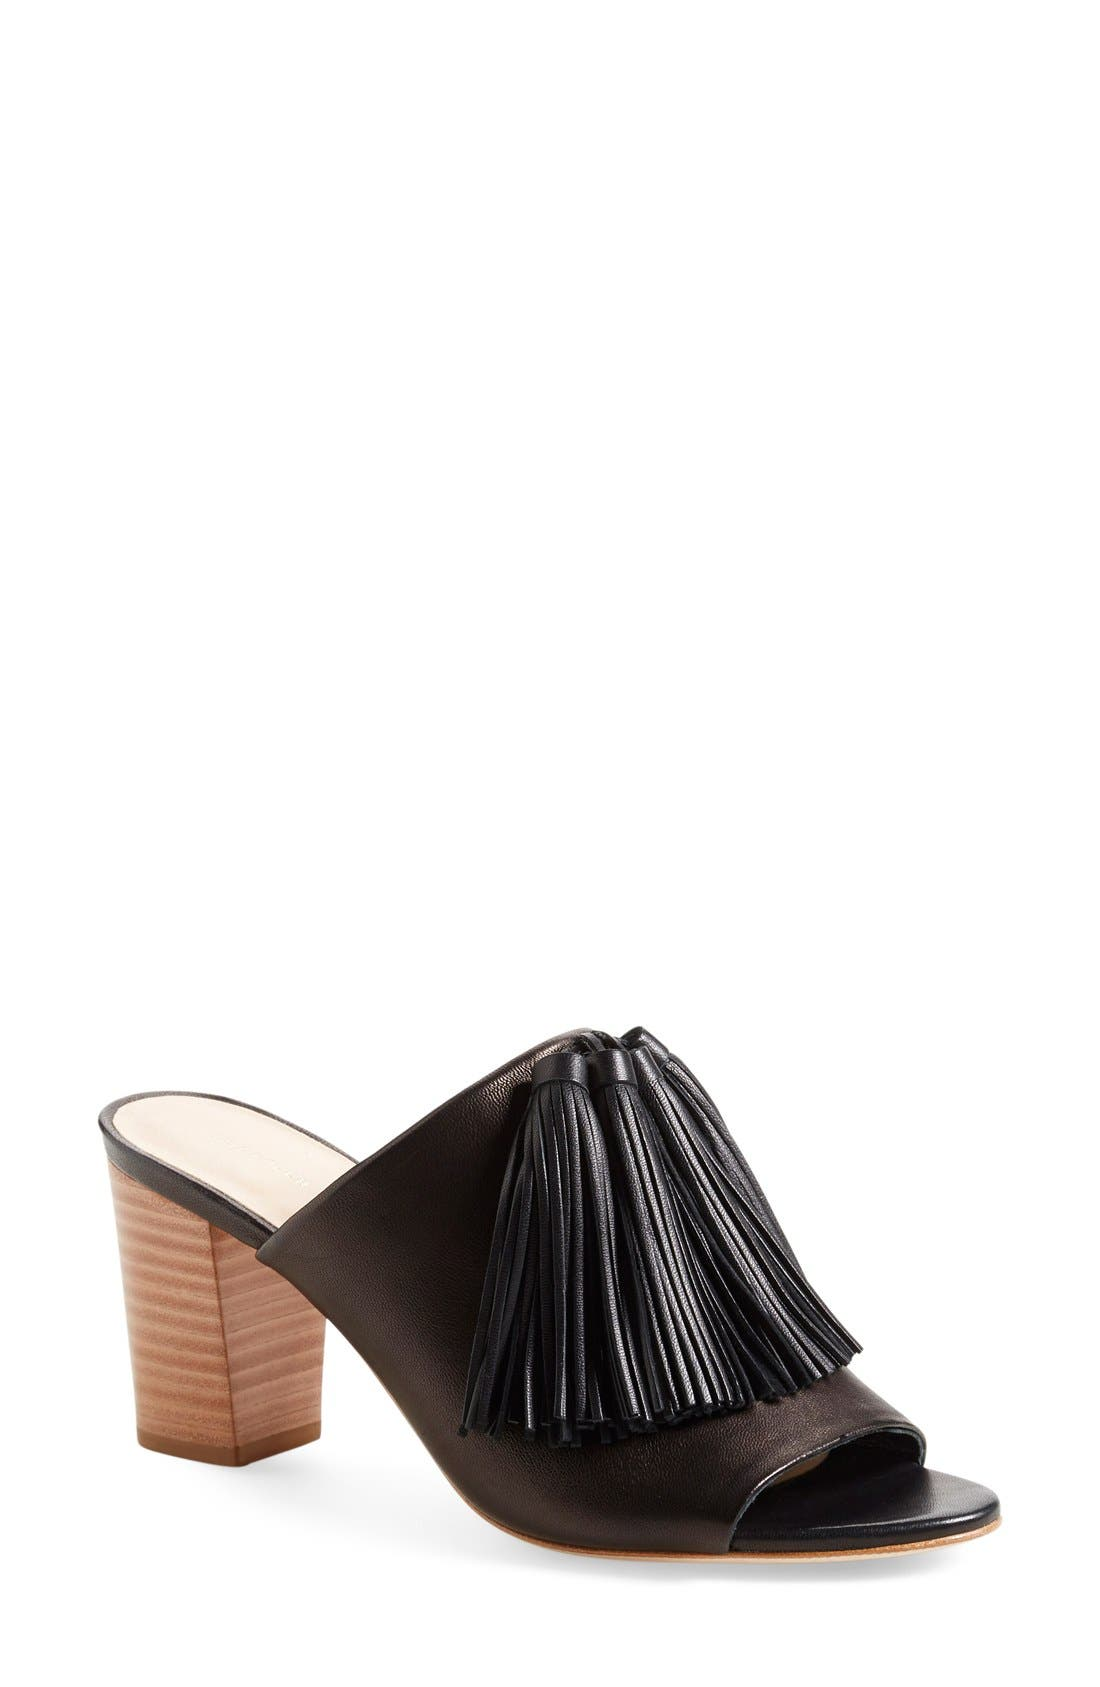 Alternate Image 1 Selected - Loeffler Randall Clo Tassel Mule Sandal